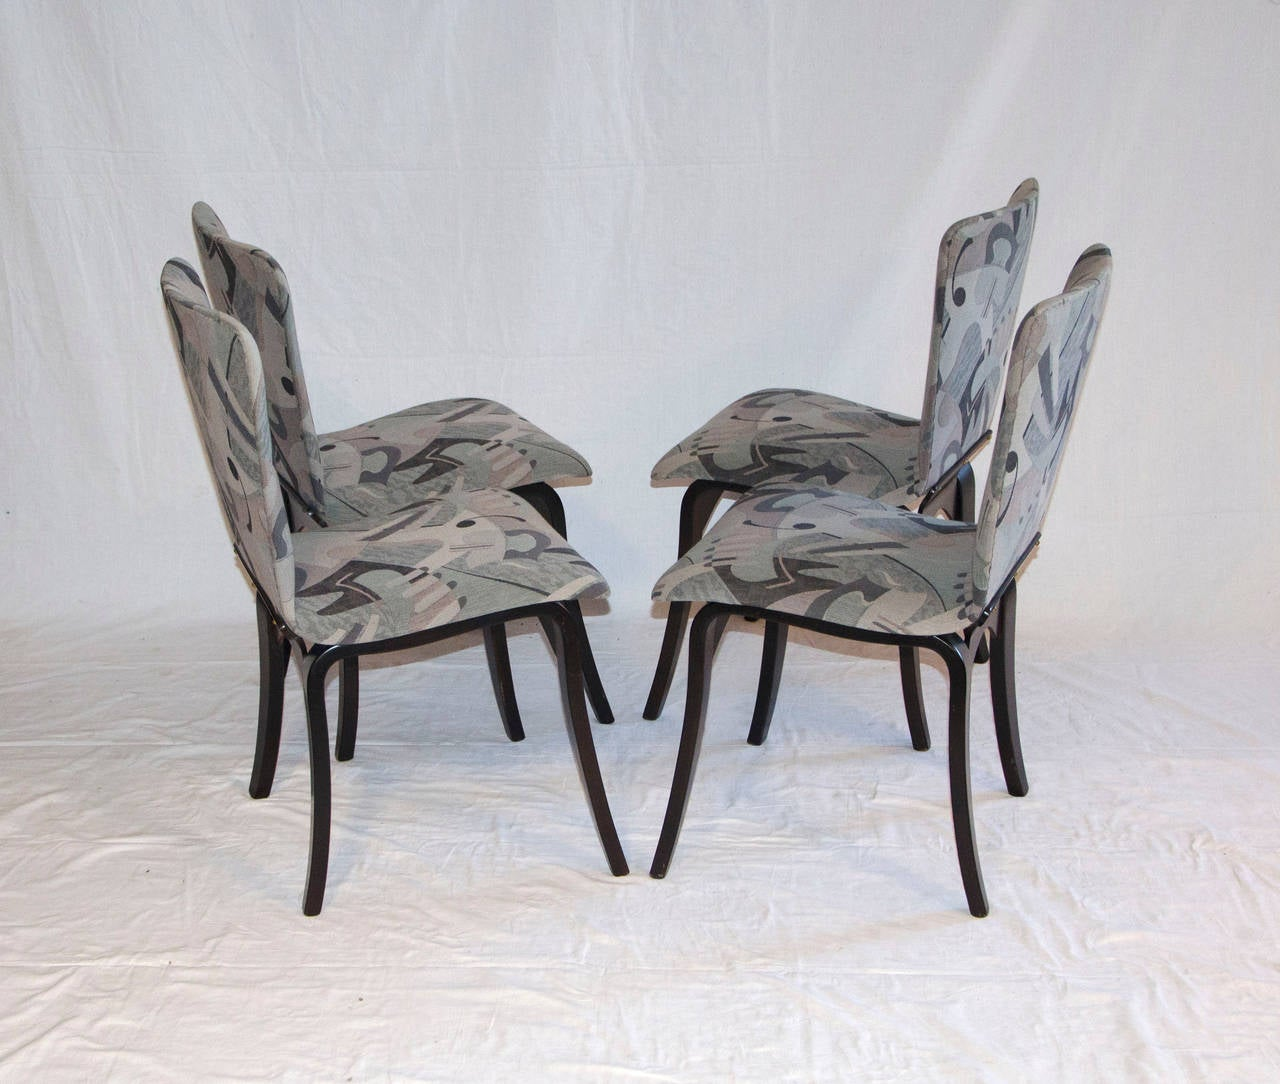 American Mid Century Bent Ply Dining Chairs - Thaden-Jordan For Sale